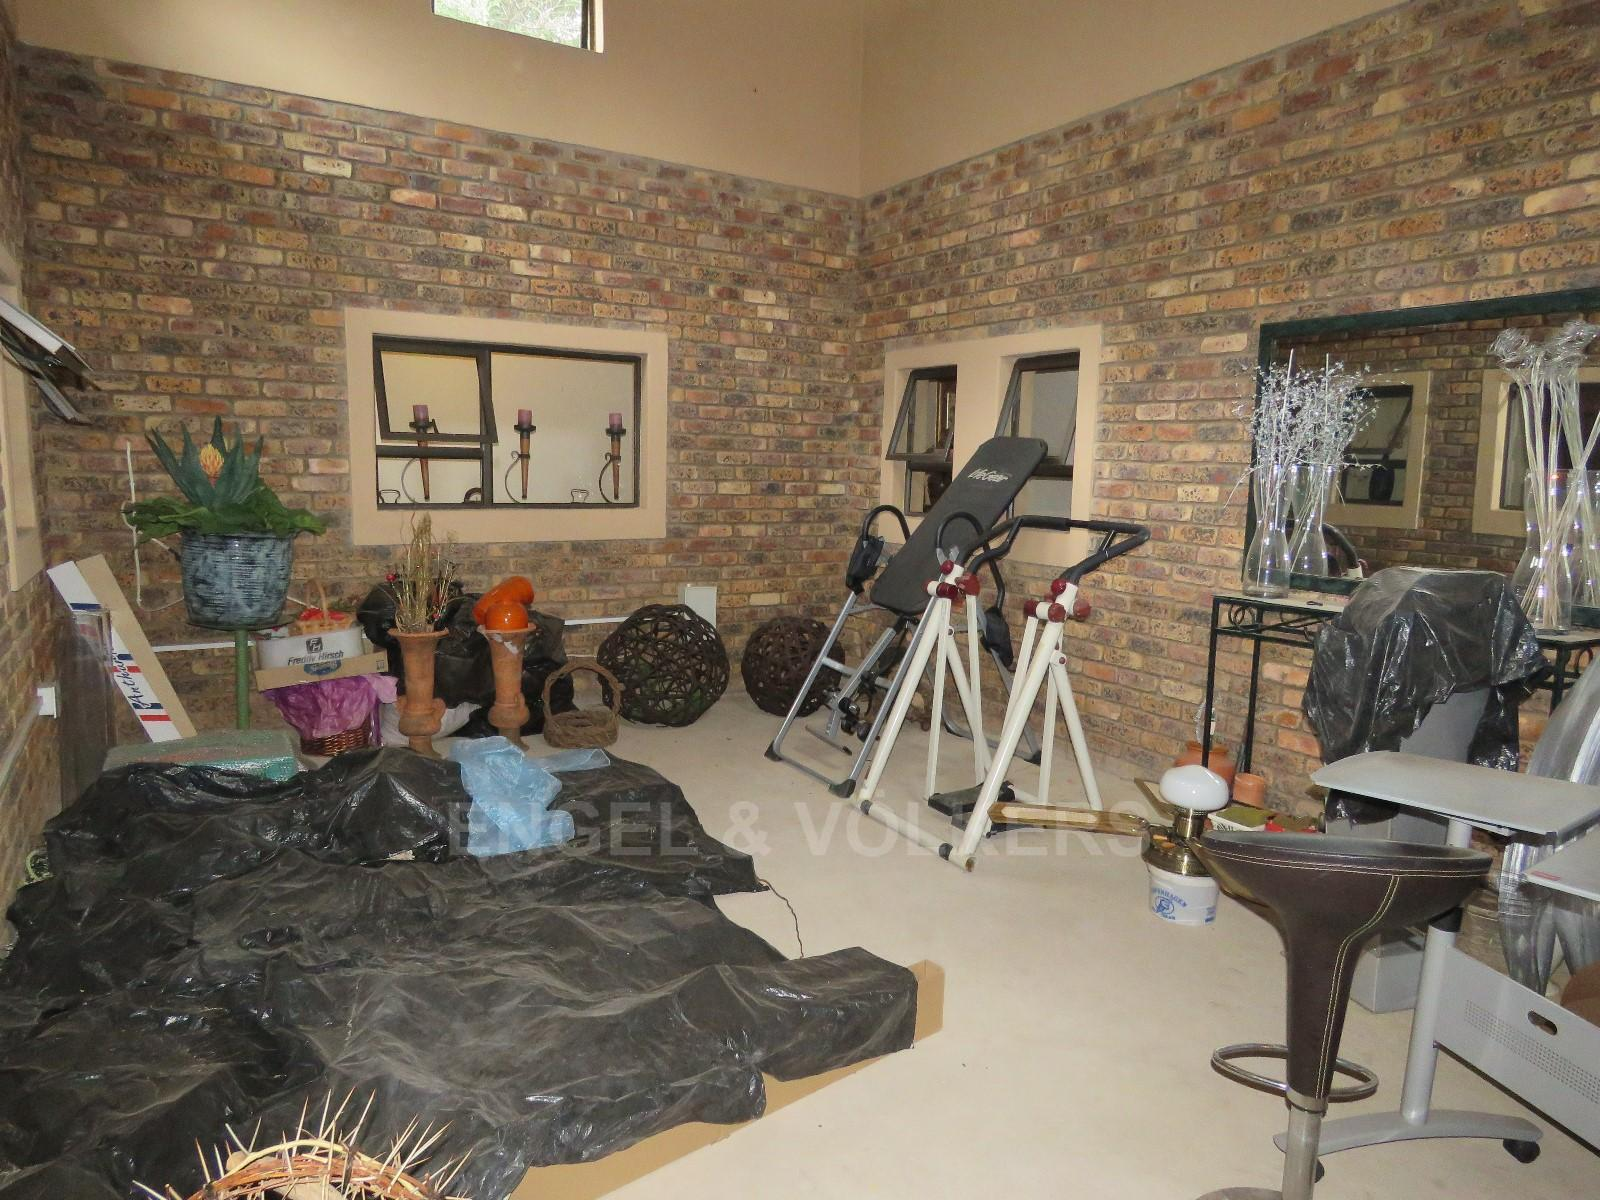 House in Schoemansville - living room/greenhouse/gym area